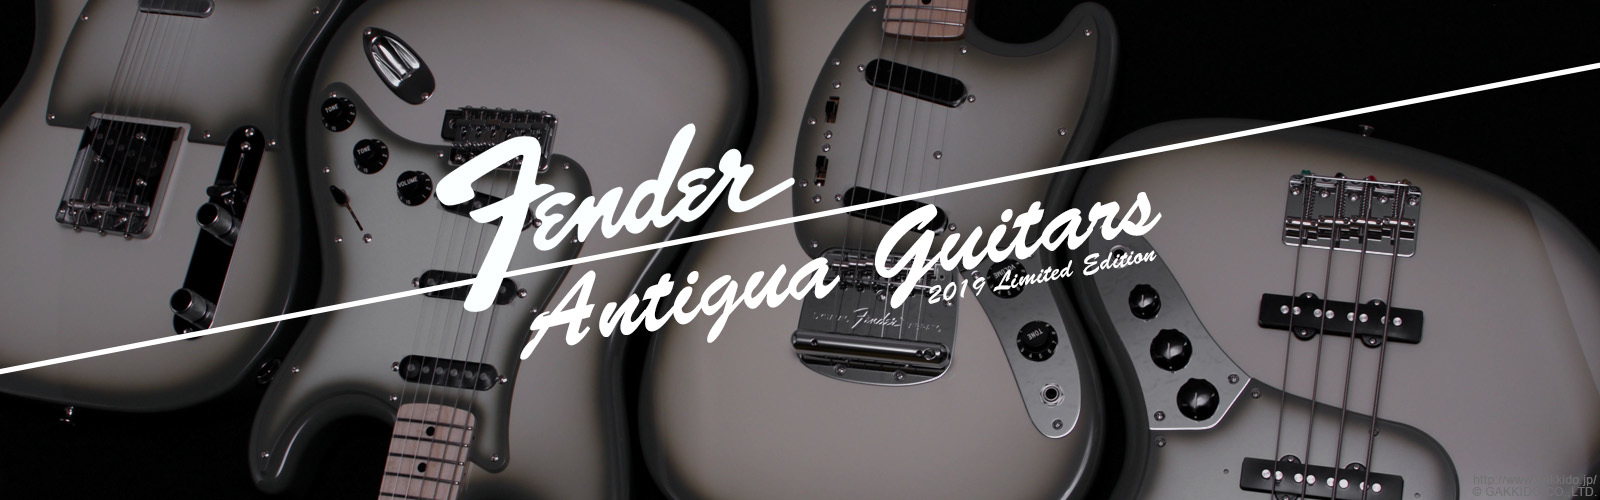 Fender Limited Edition Made in Japan Antigua Guitars and Basses